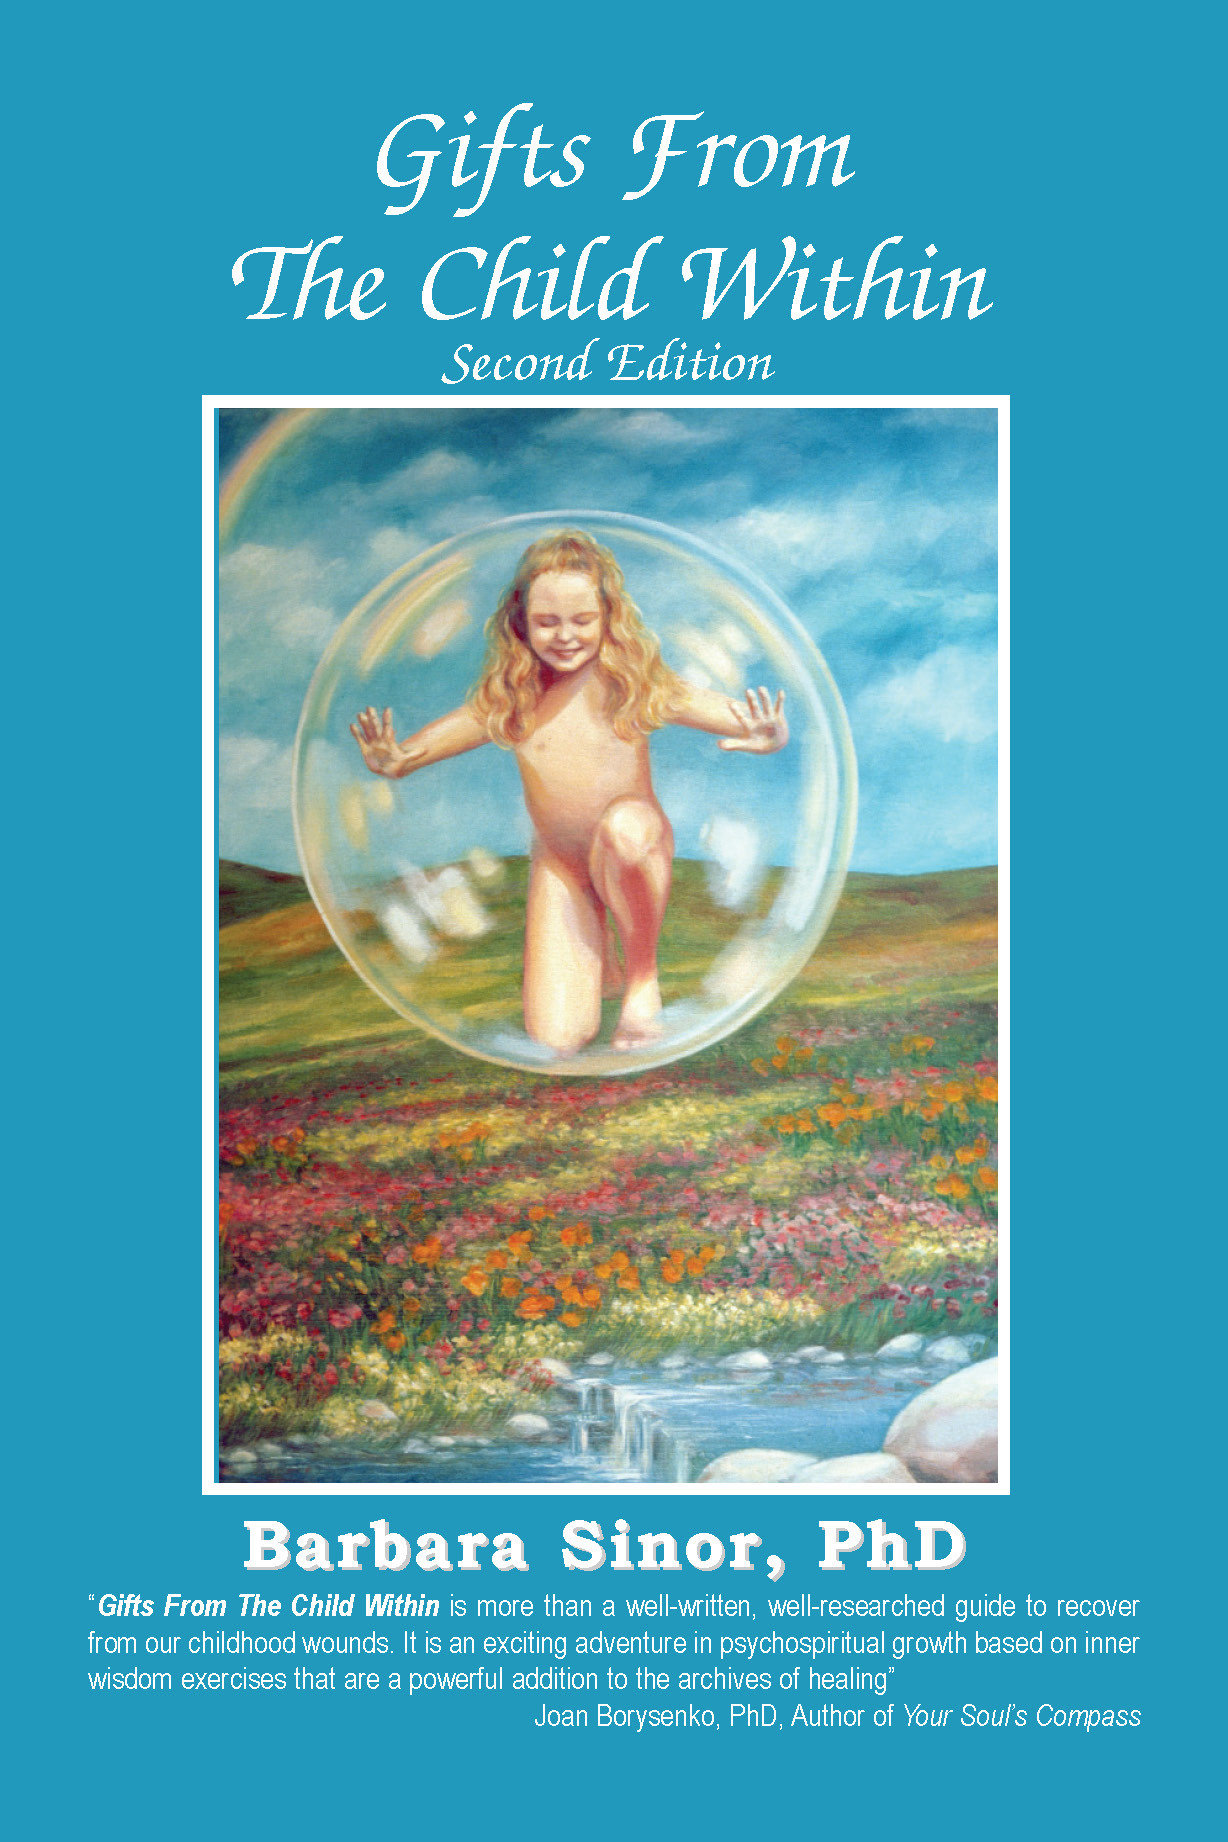 Gifts From The Child Within: A Recovery Workbook 978-1-932690-46-0